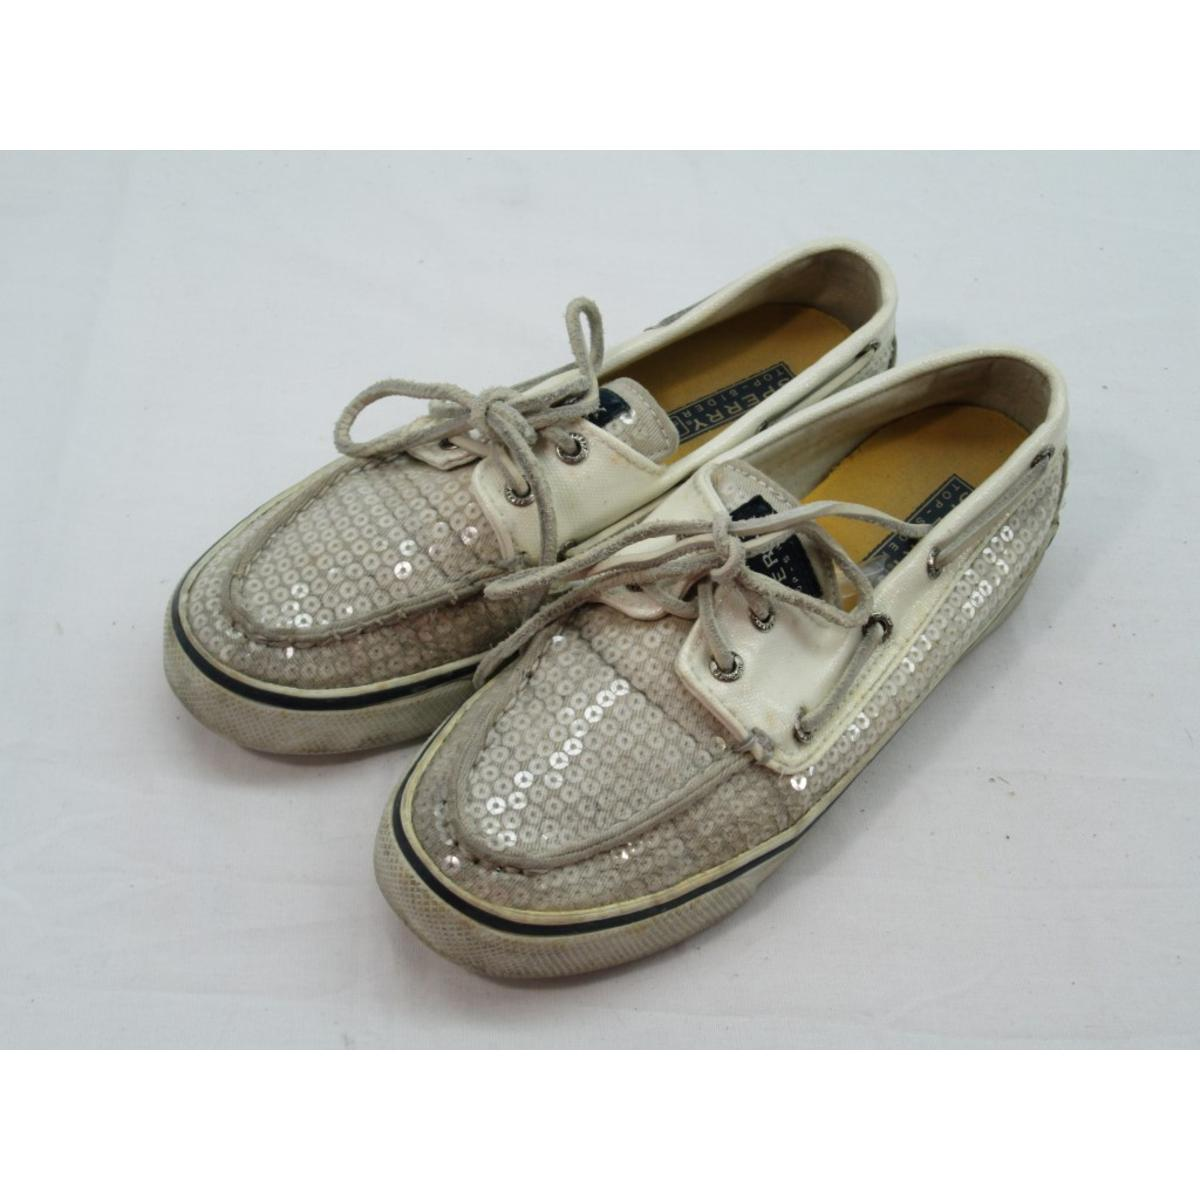 Details about Sperry Top Sider Women s Bahama 2 Eye White Sequin Boat Shoe  6M 86979c3537